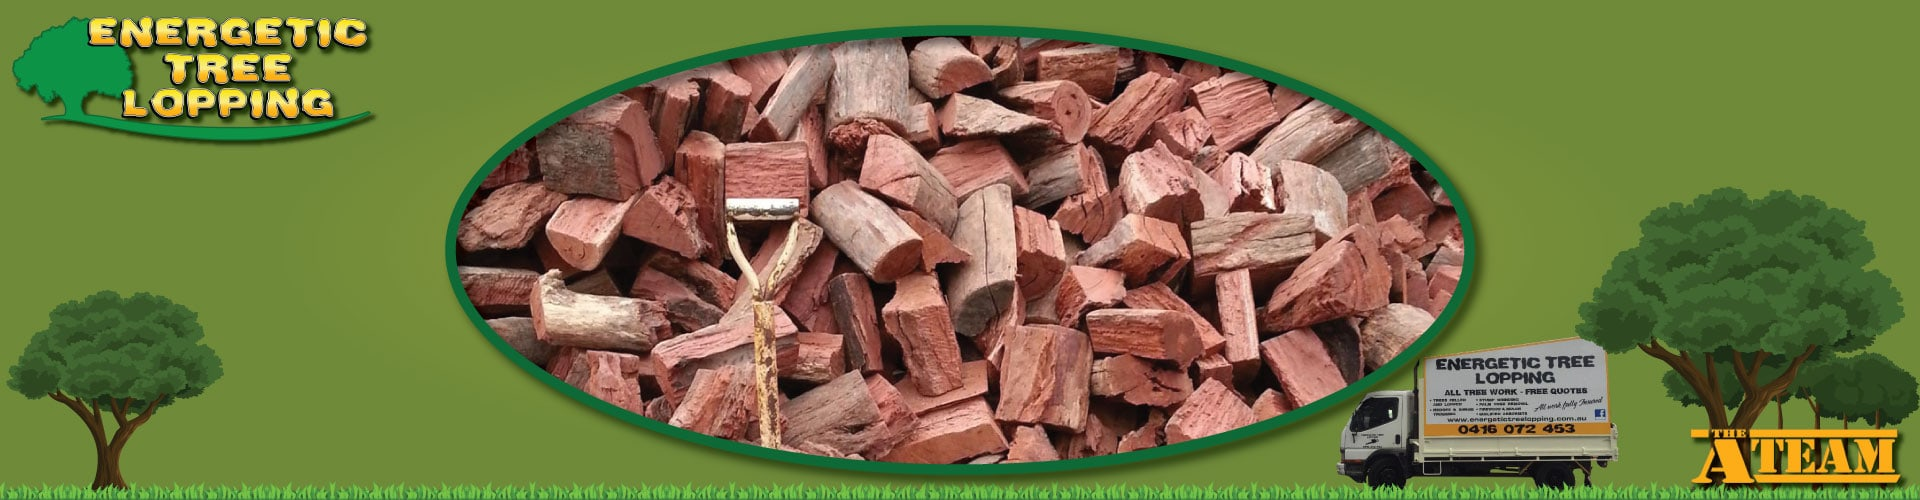 Firewood from Energetic Tree Lopping for sale feature image